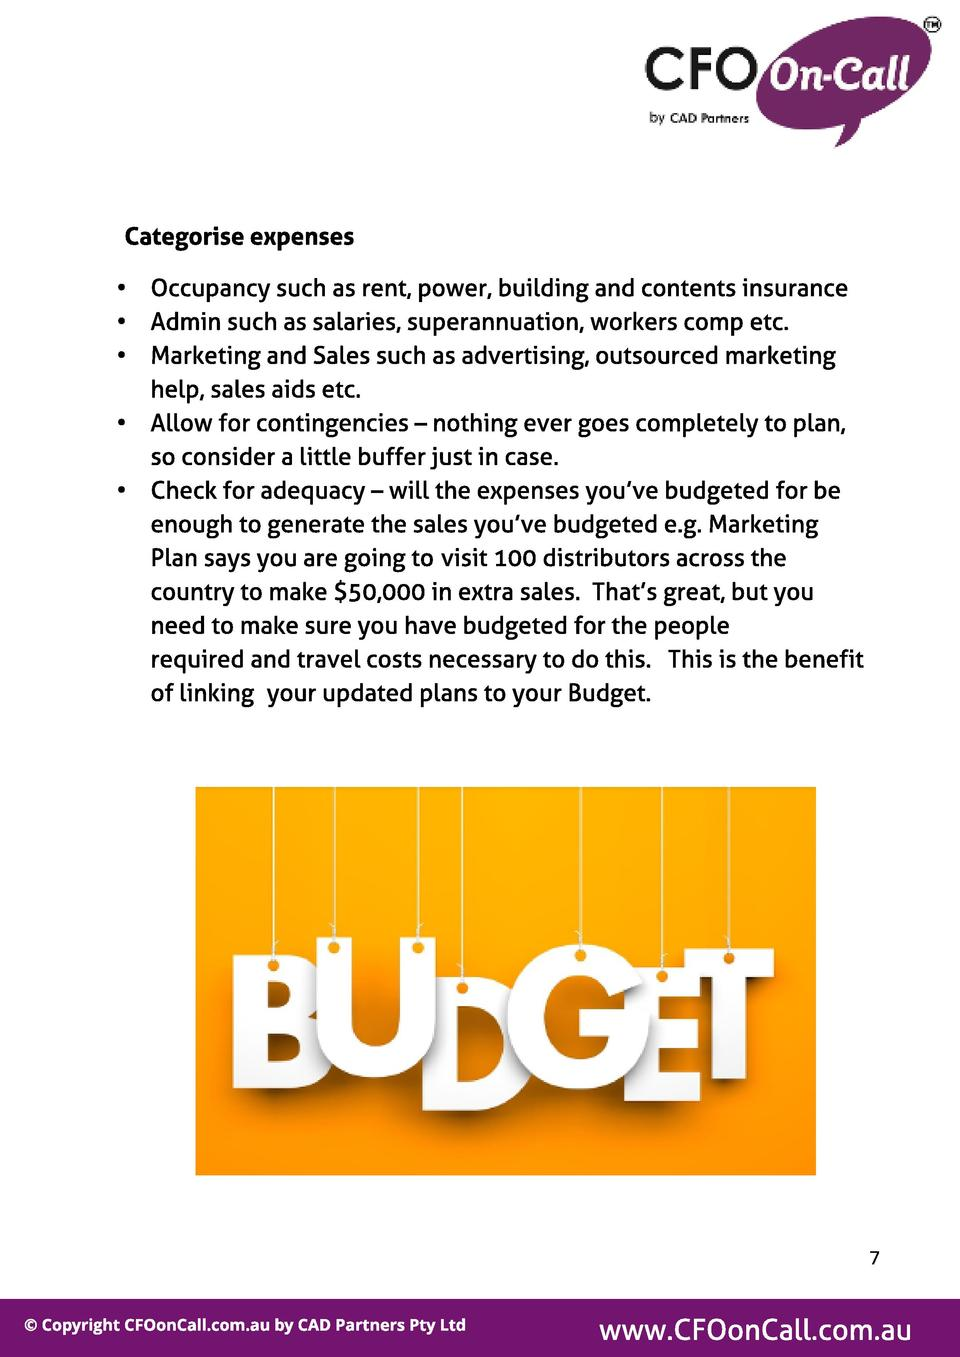 Cat egorise expenses -  Occupancy such as rent, power, building and contents insurance Admin such as salaries, superannuat...